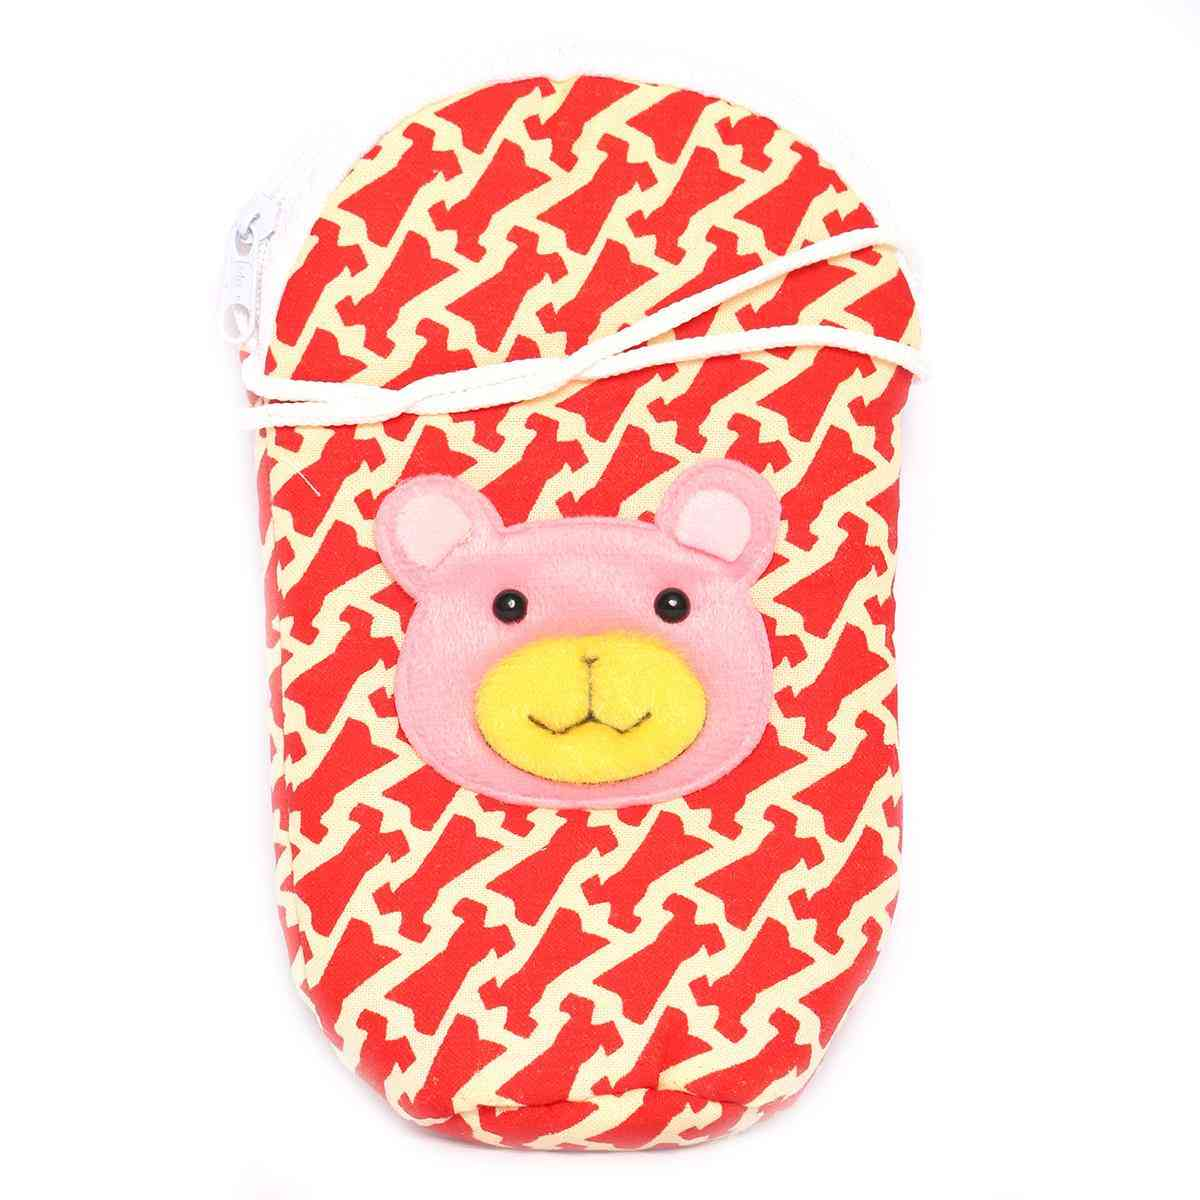 Vitamin Baby Cartoon Character 7x4 Inches Feeder Cover for Feeder Bottle with String  Red